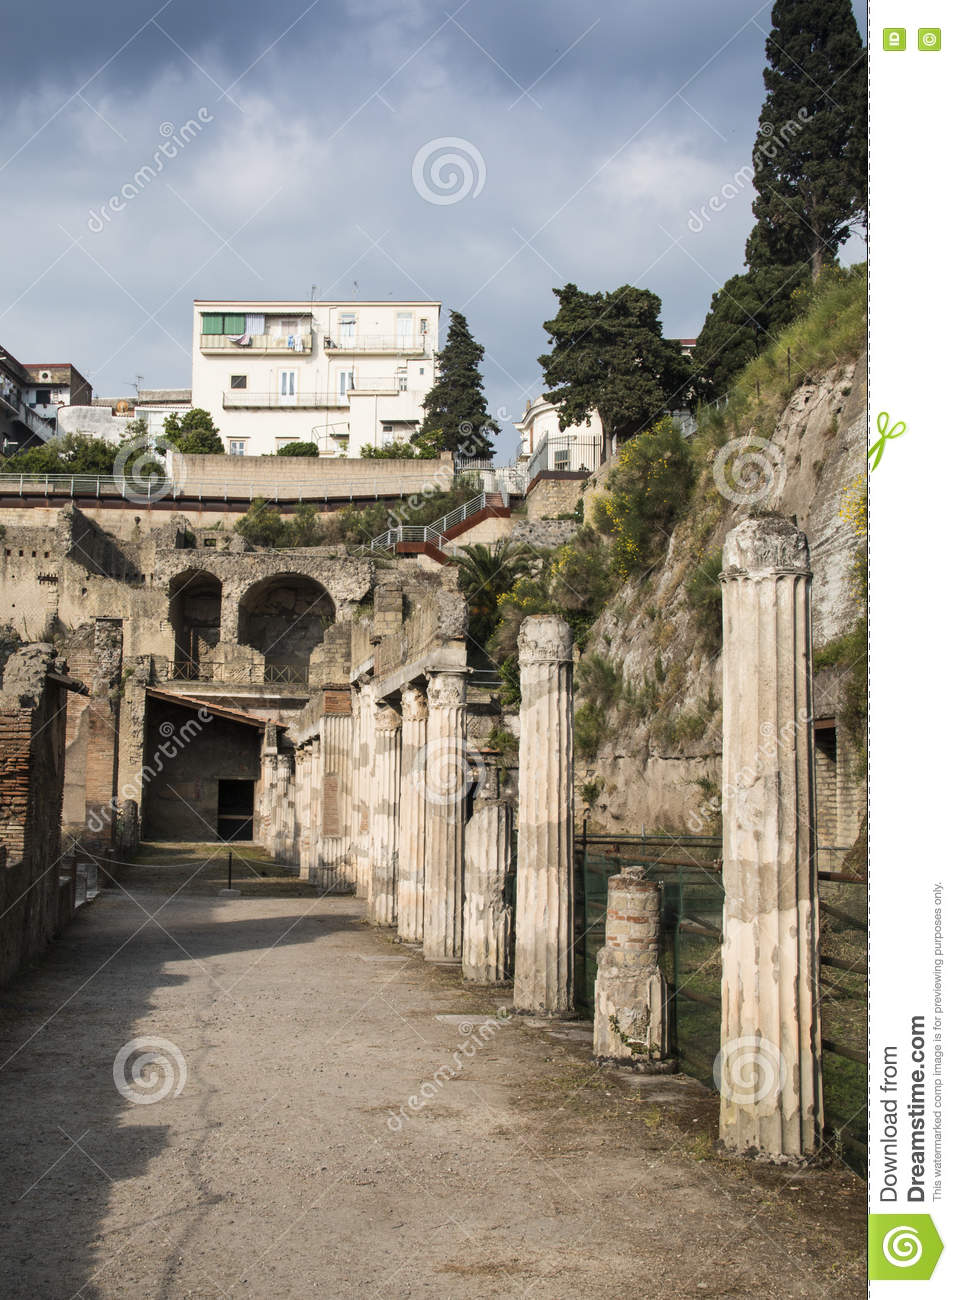 how to get to herculaneum from naples